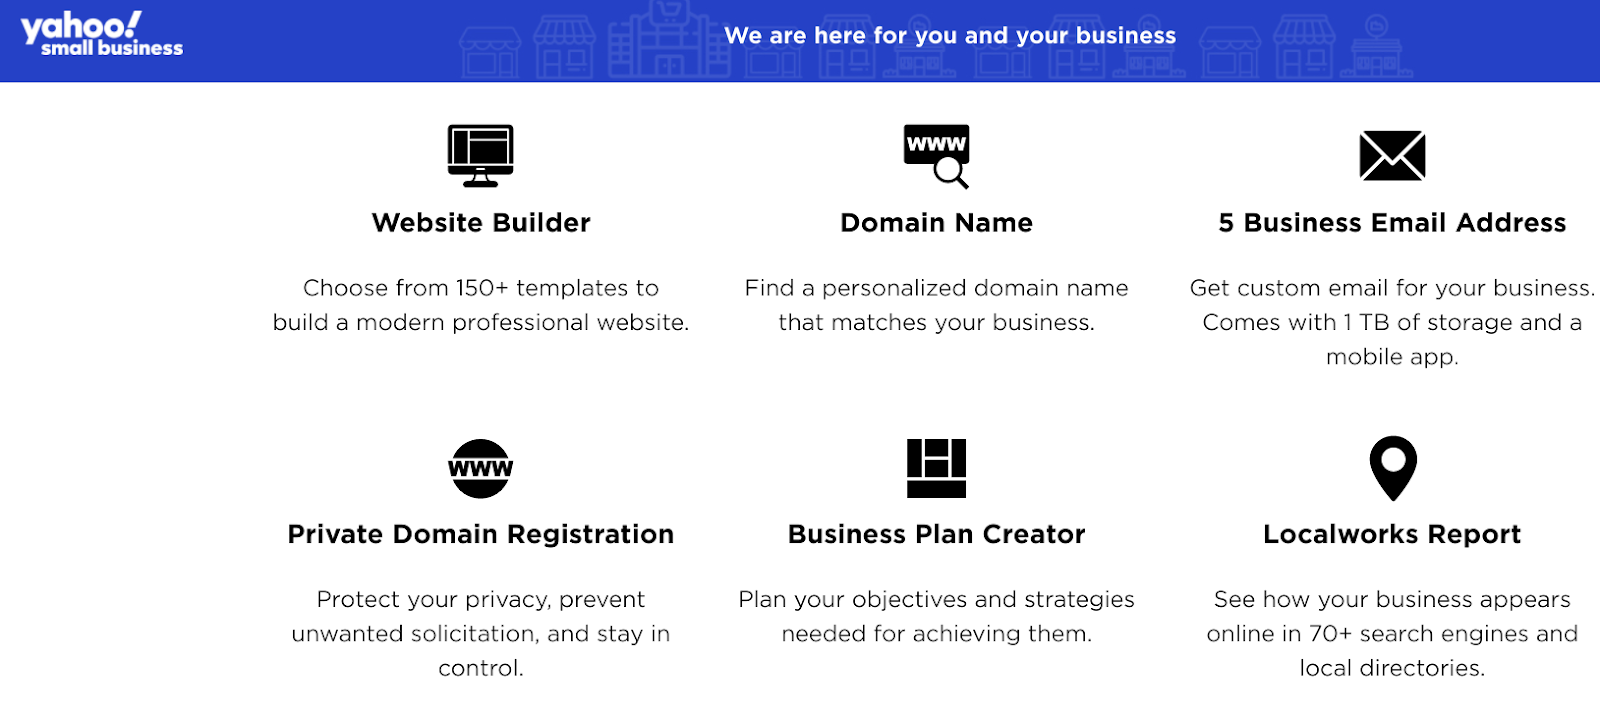 Yahoo small business package